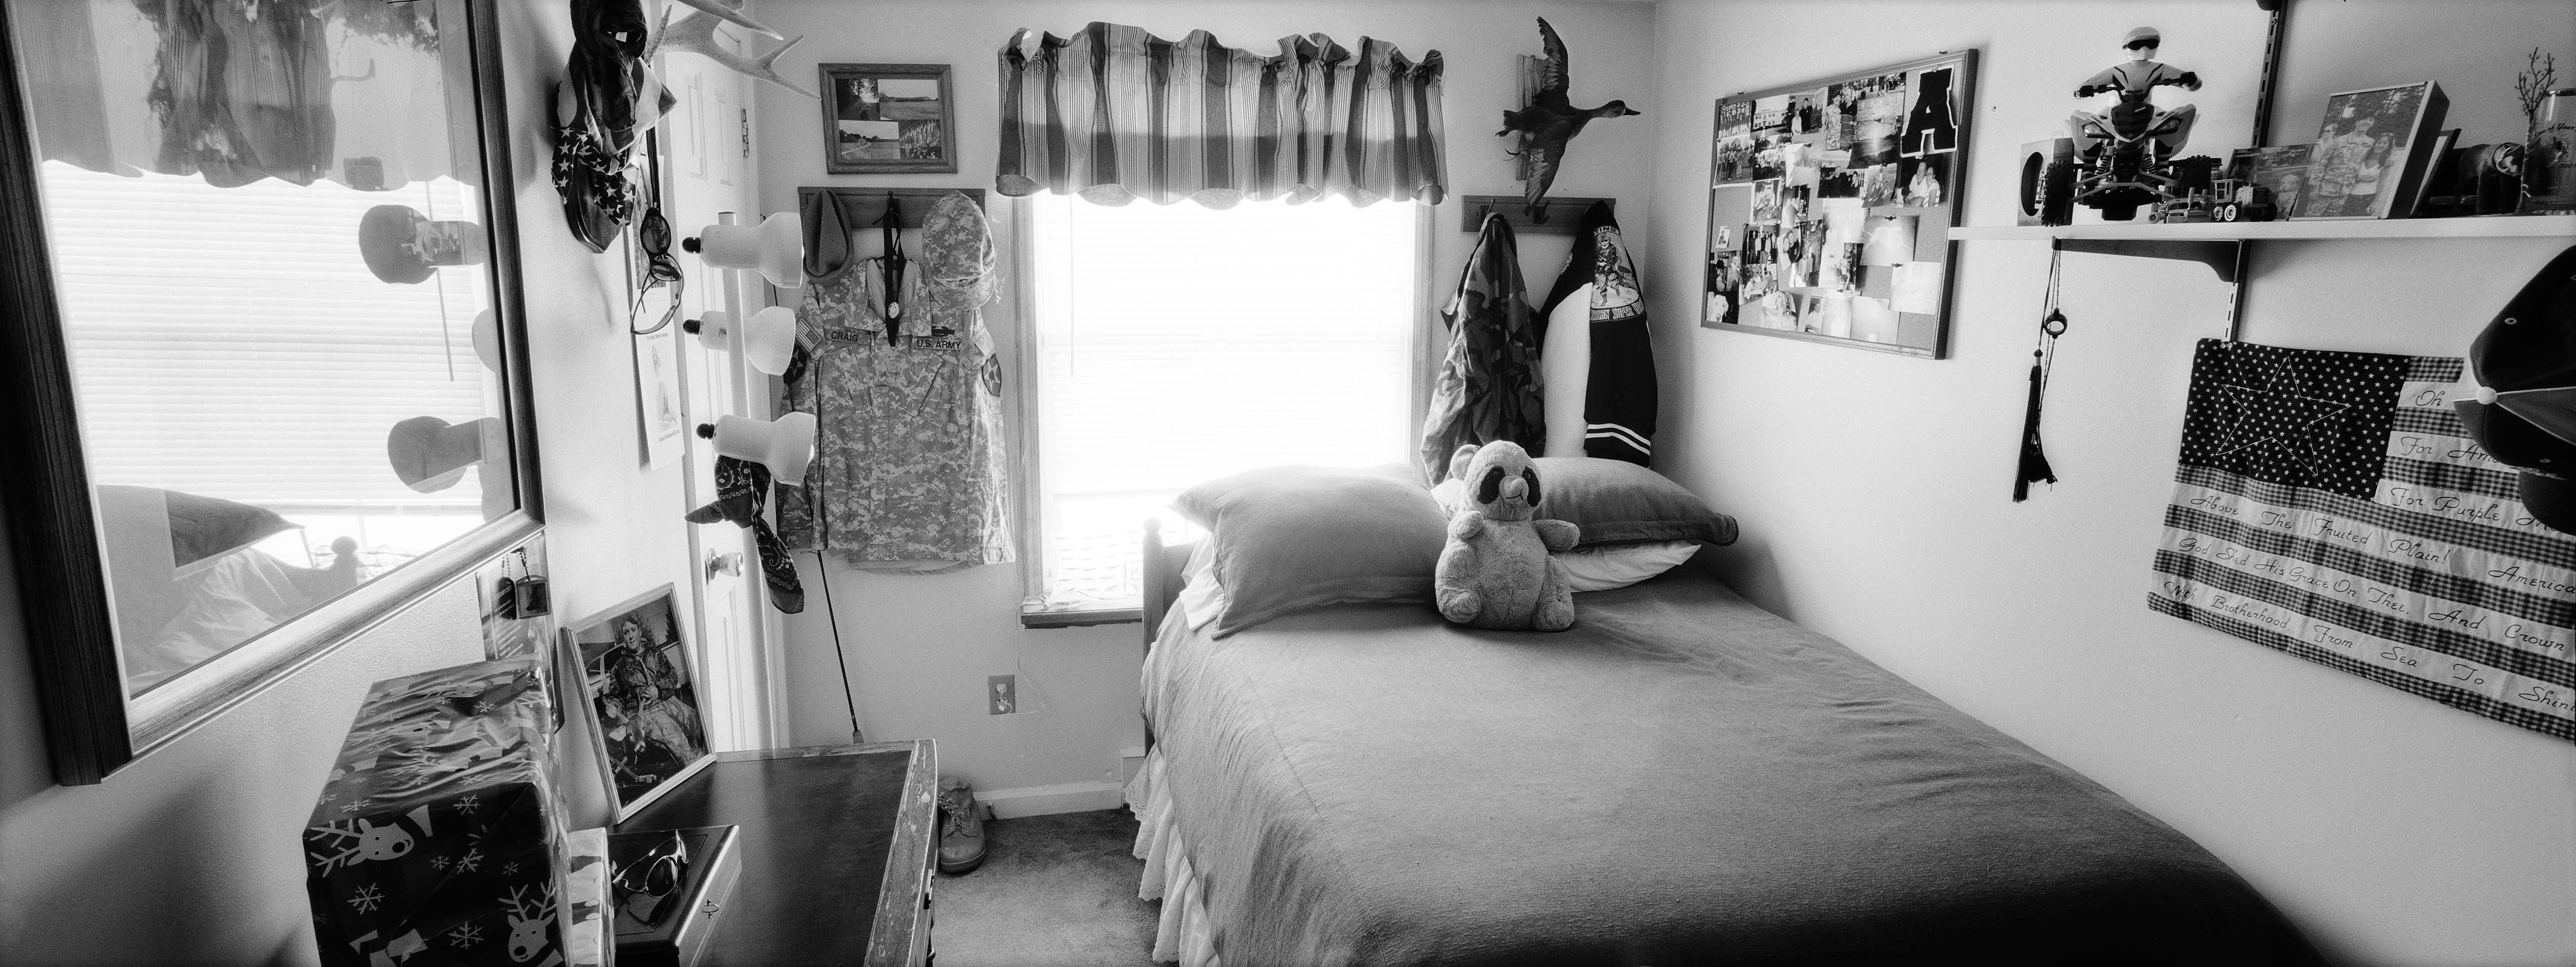 Best Bedrooms Of The Fallen My Friend S House With Pictures